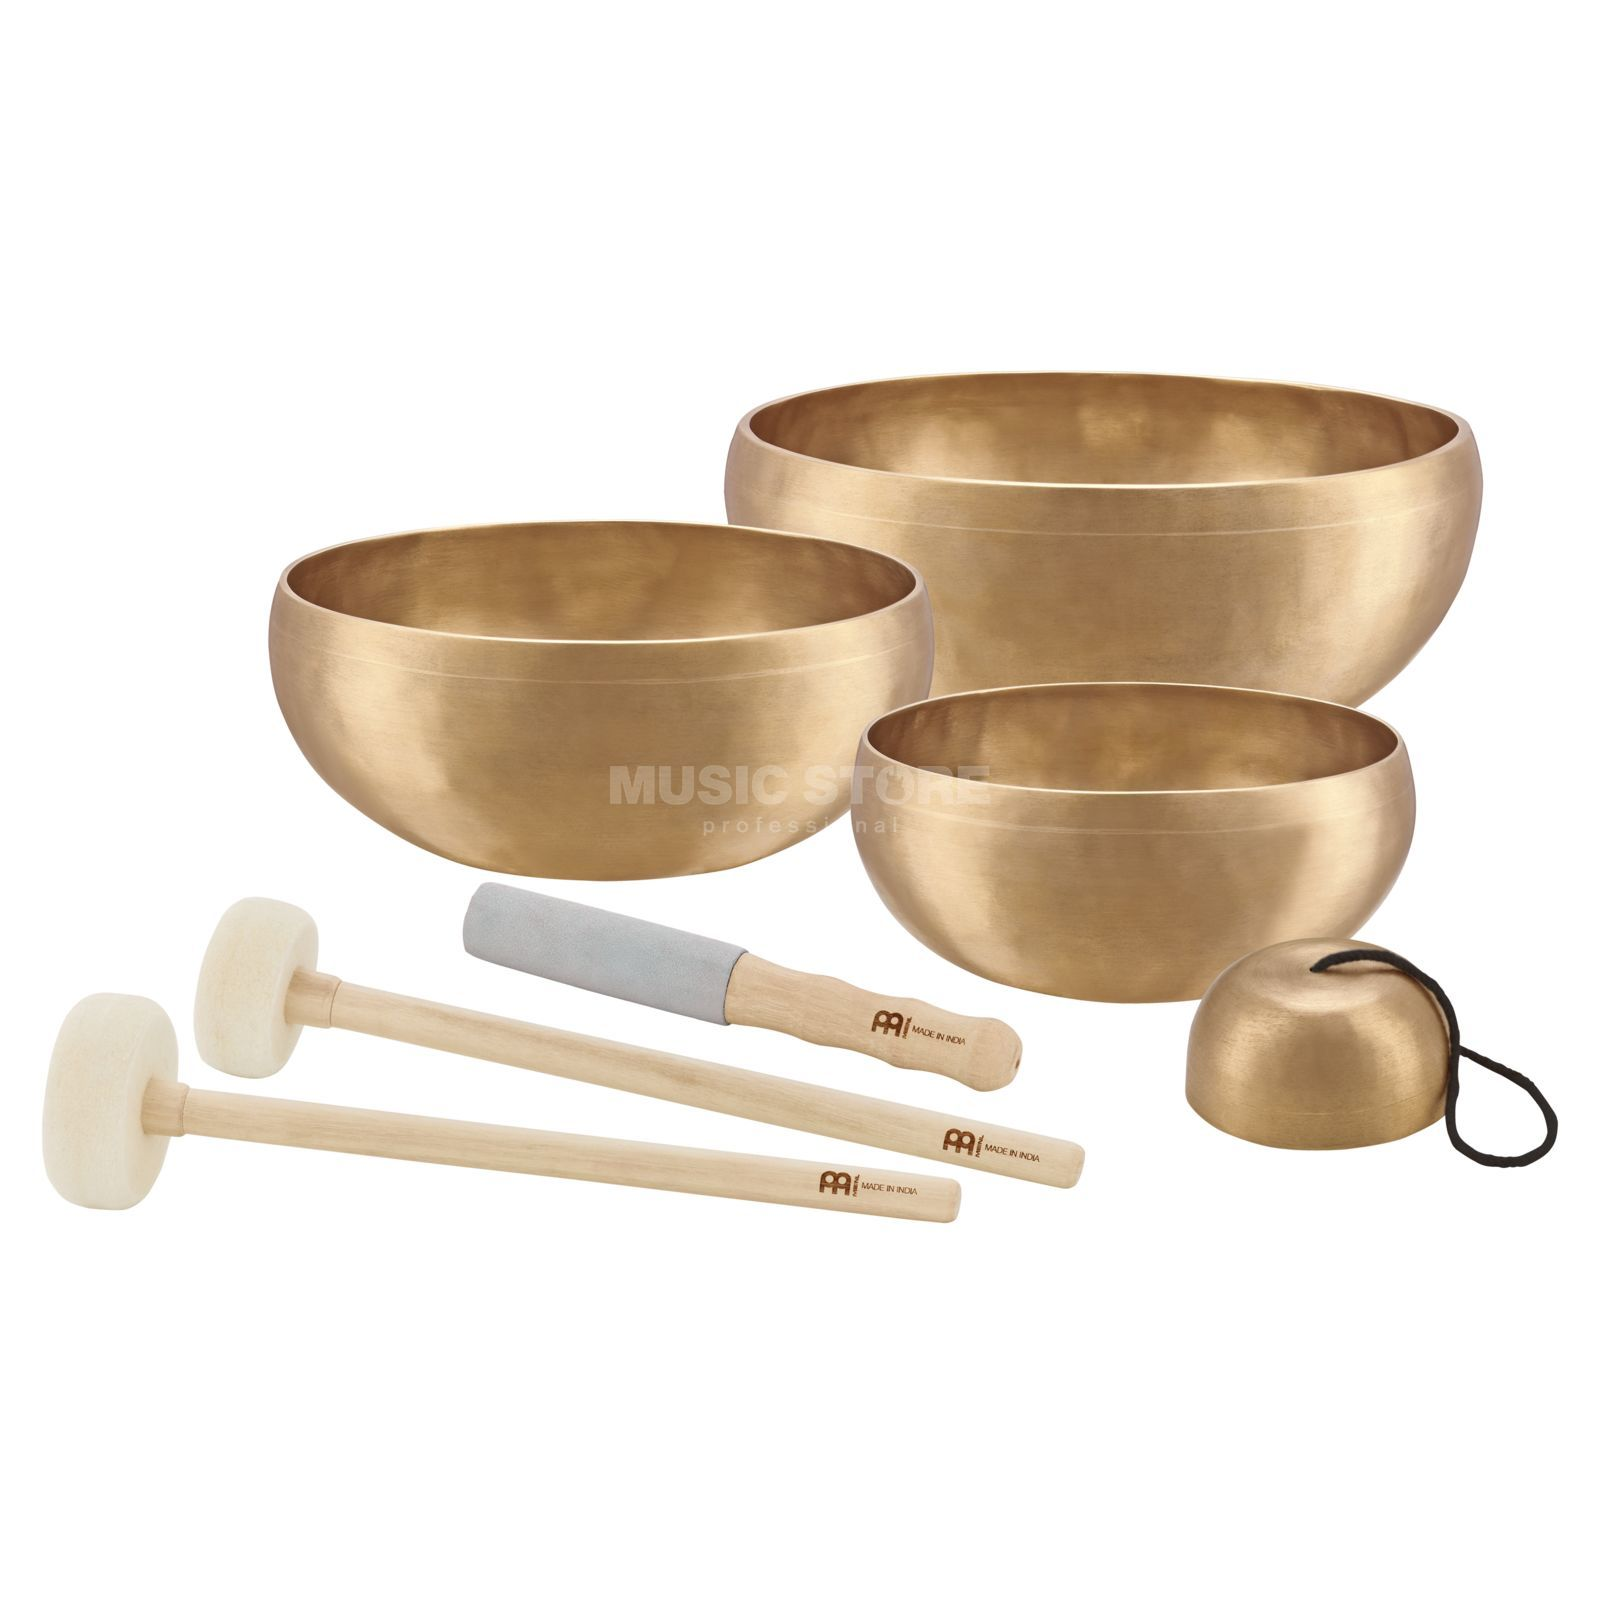 Meinl Singing Bowl Set SB-C-4750, Cosmos Series Produktbillede